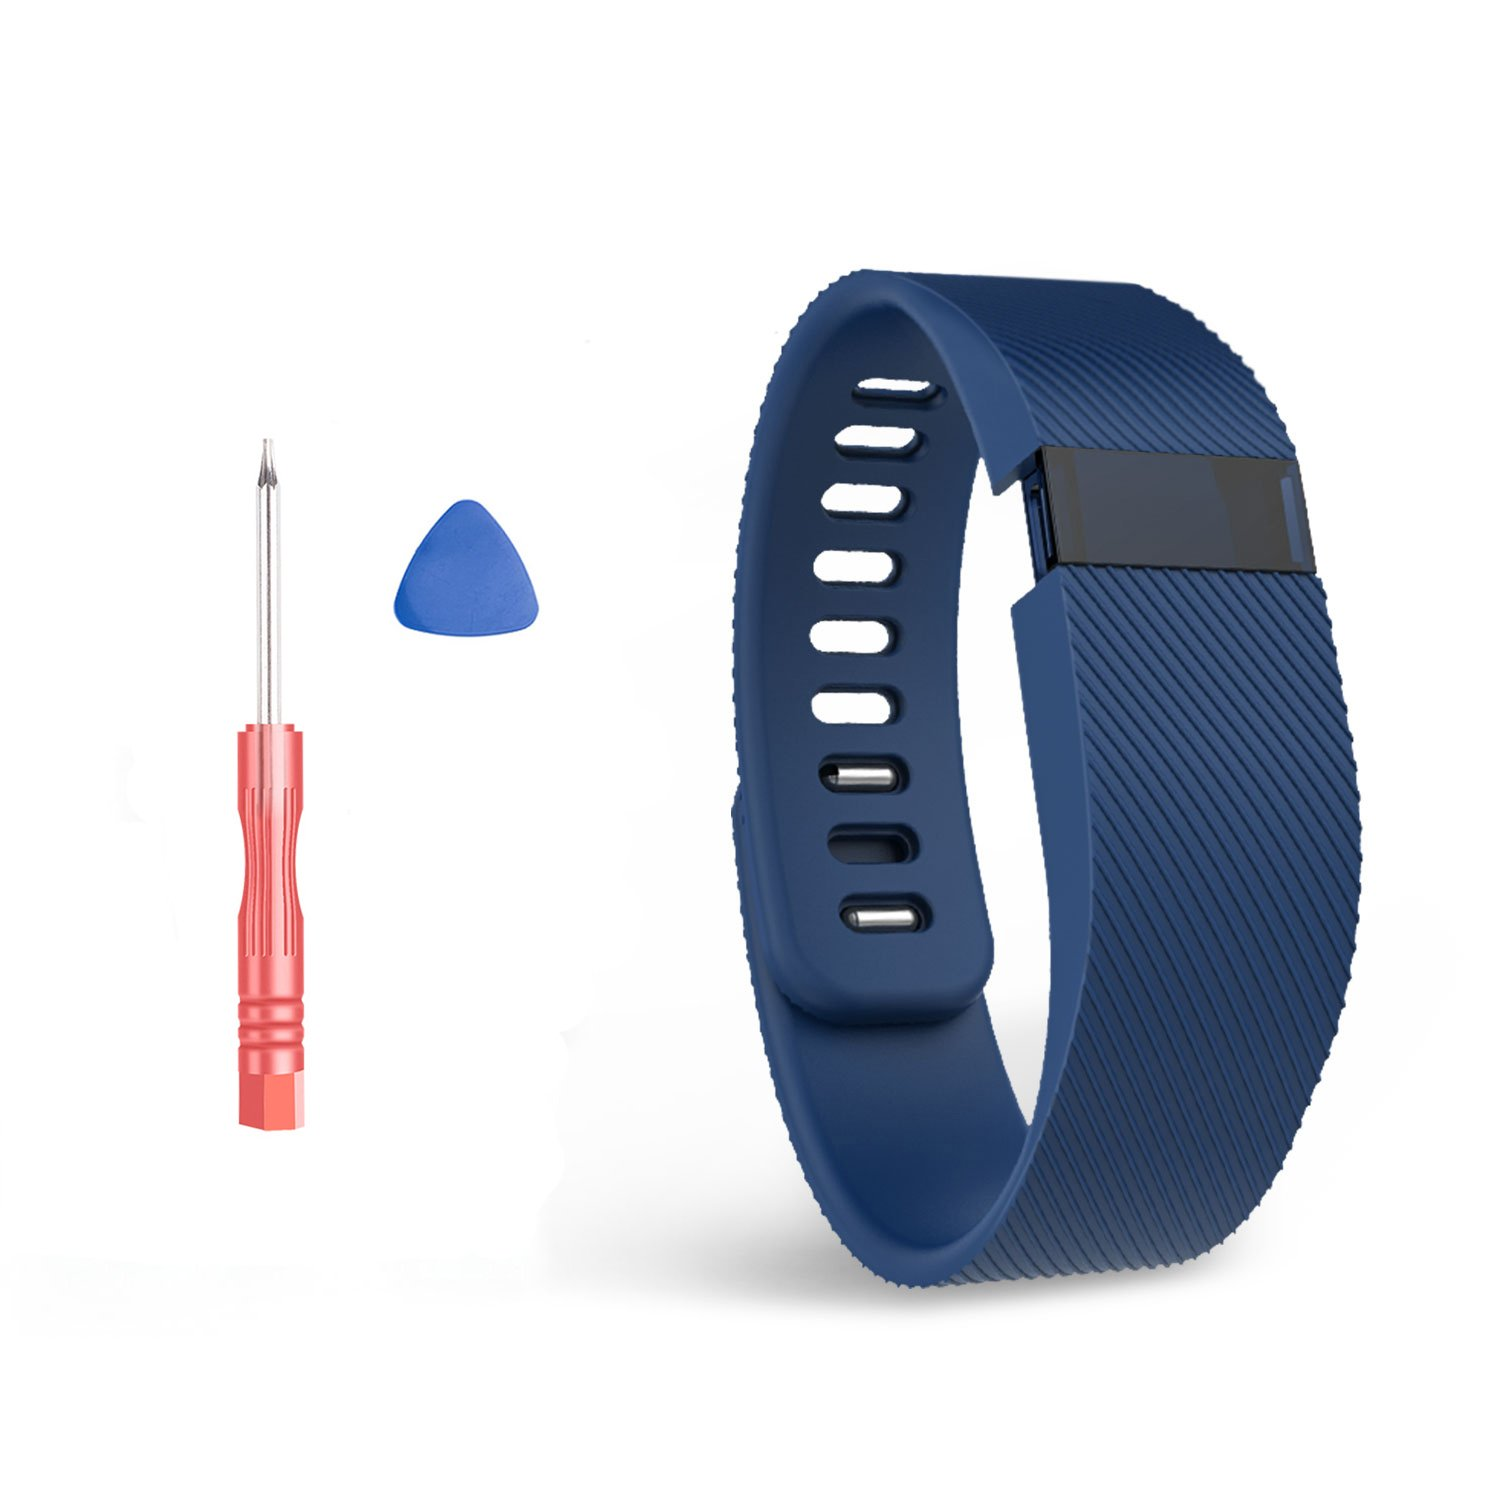 For Fitbit Chargeバンド、topopo交換バンドストラップブレスレットfor Fitbit Charge Small(5.5